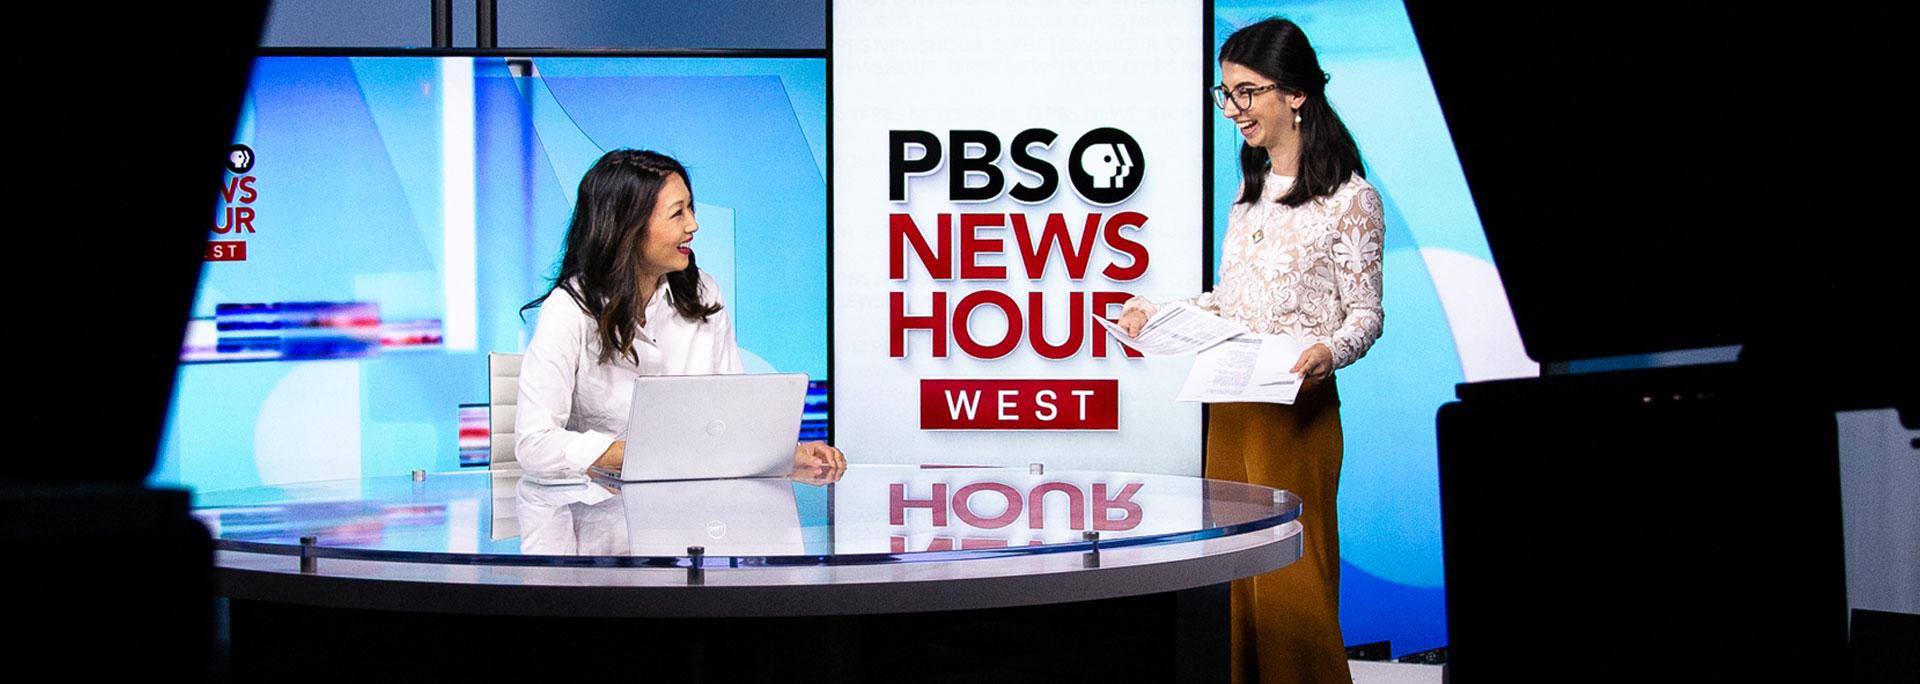 Cronkite student Muska Olumi (right) delivers a script to anchor Stephanie Sy before the PBS NewsHour West show. Photo by Ellen O'Brien